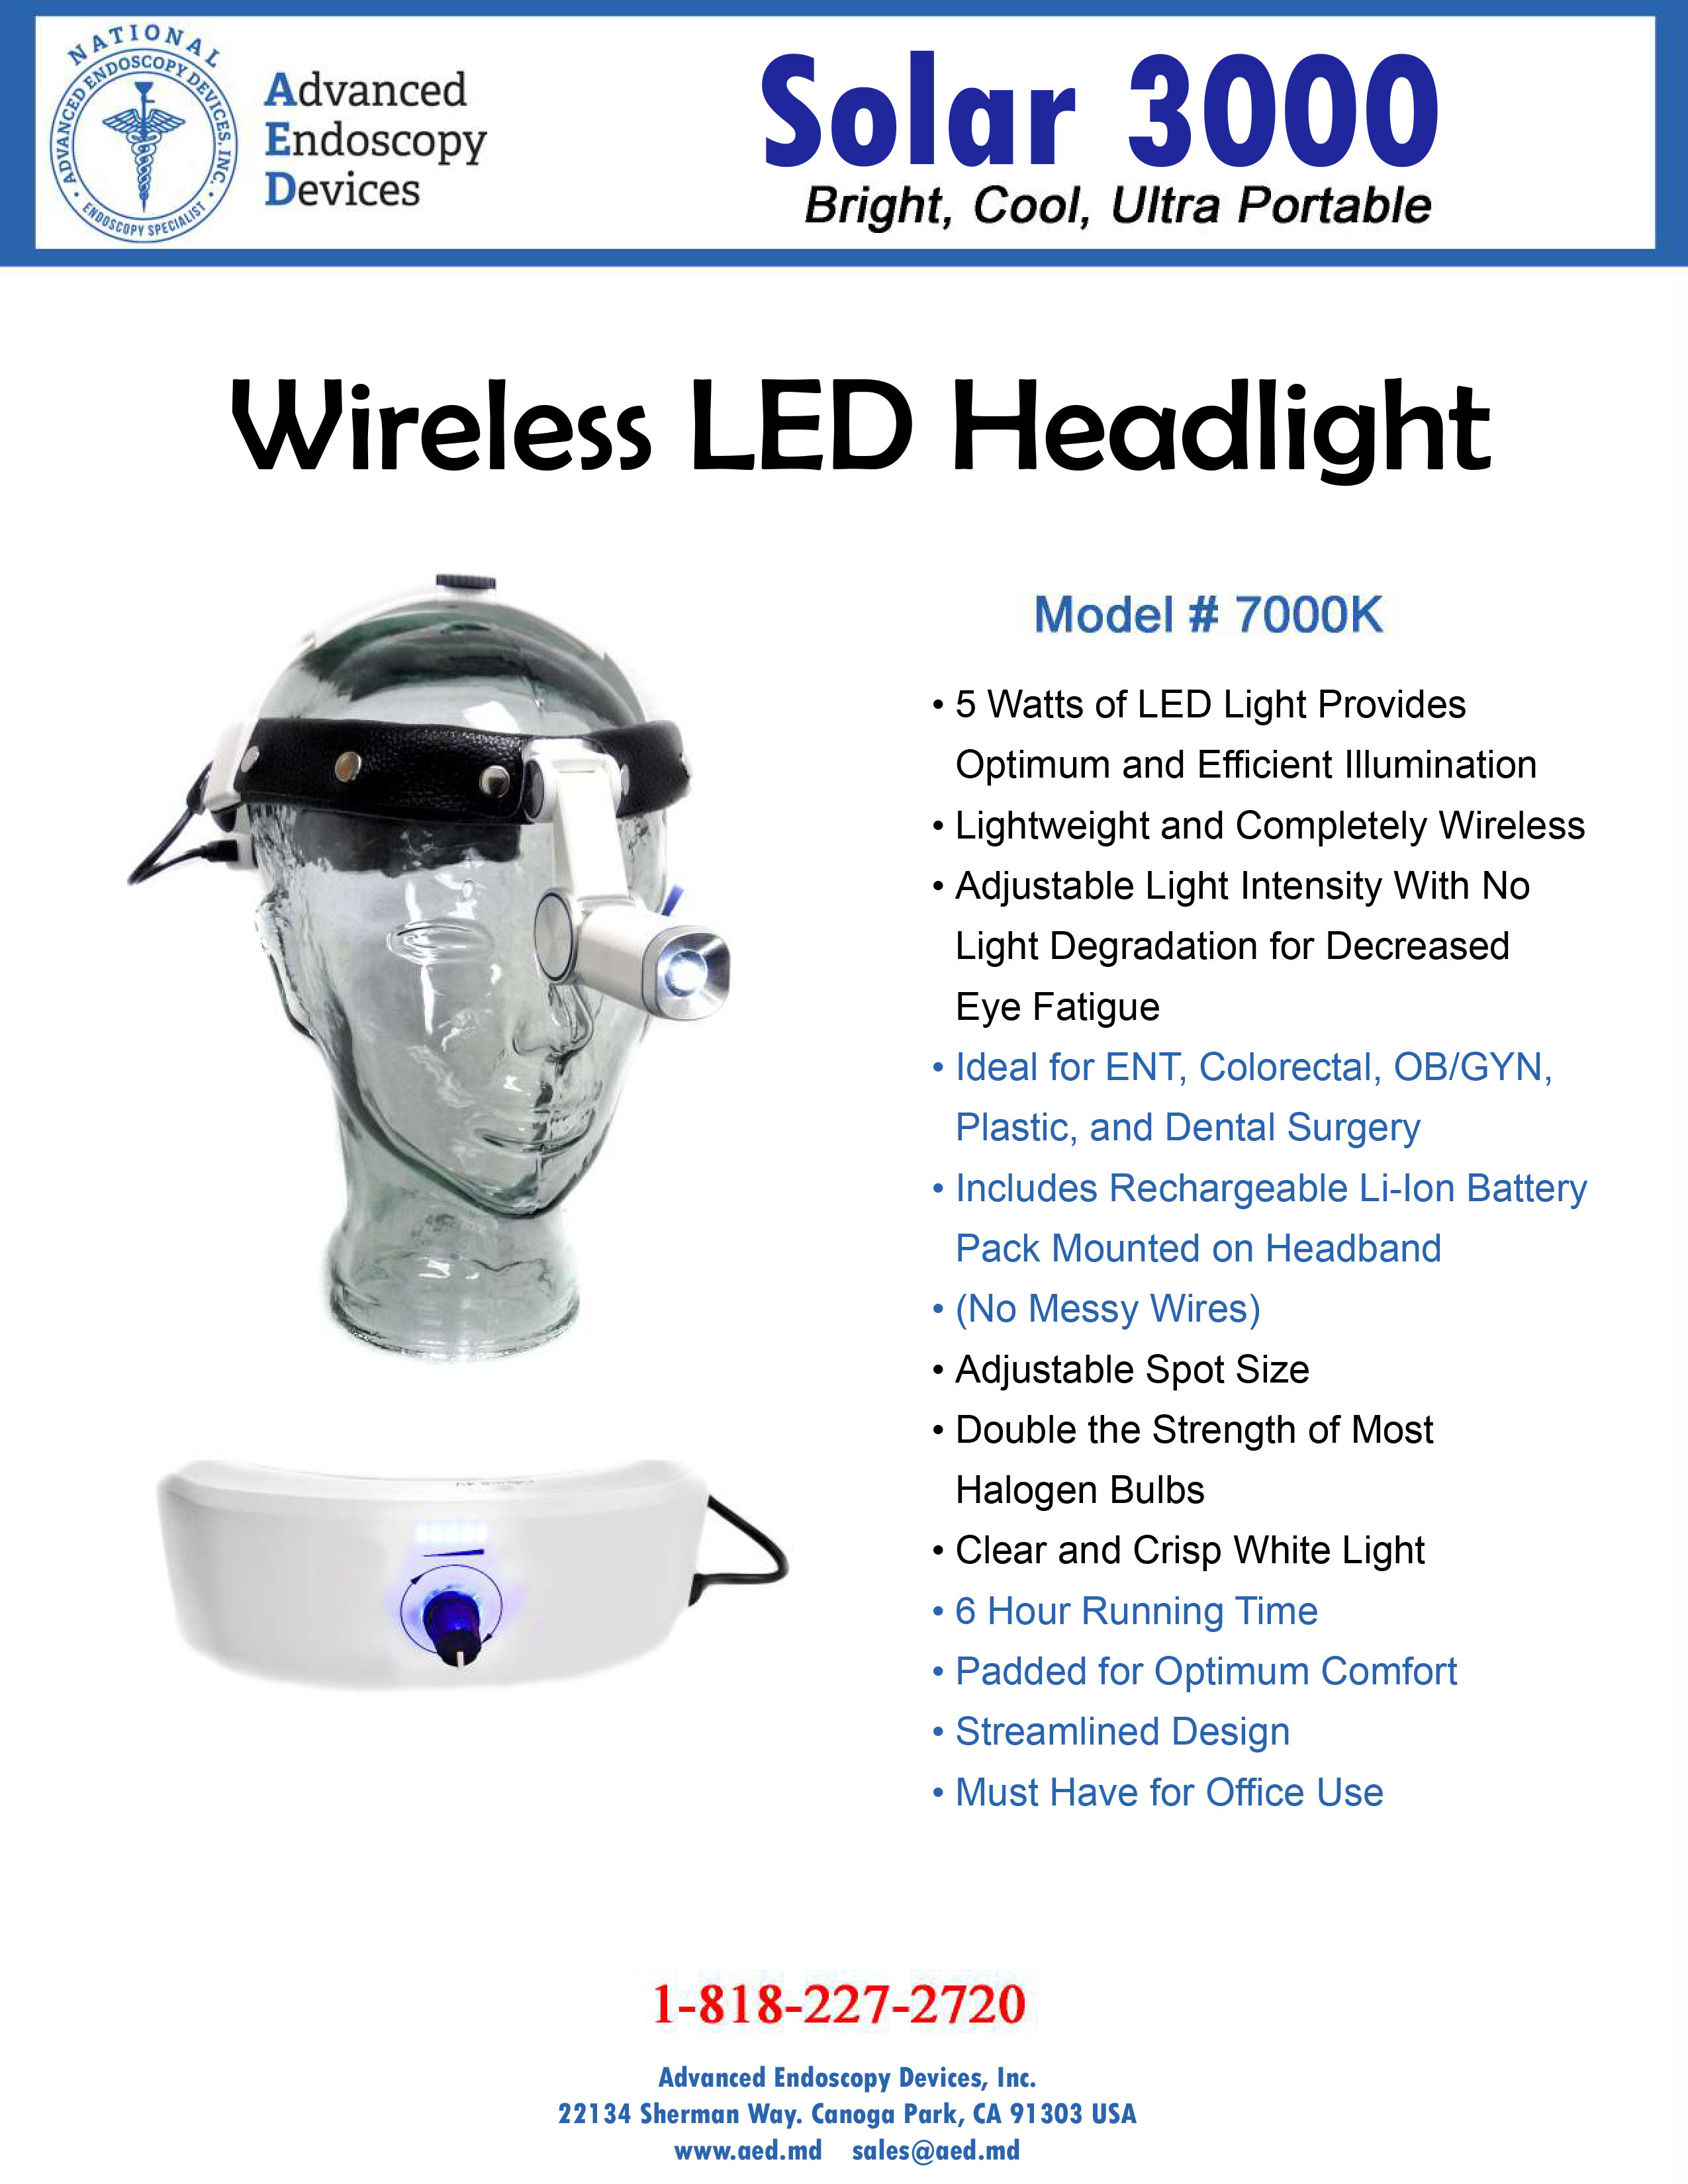 Solar 3000 Wireless LED Headlight Product Page